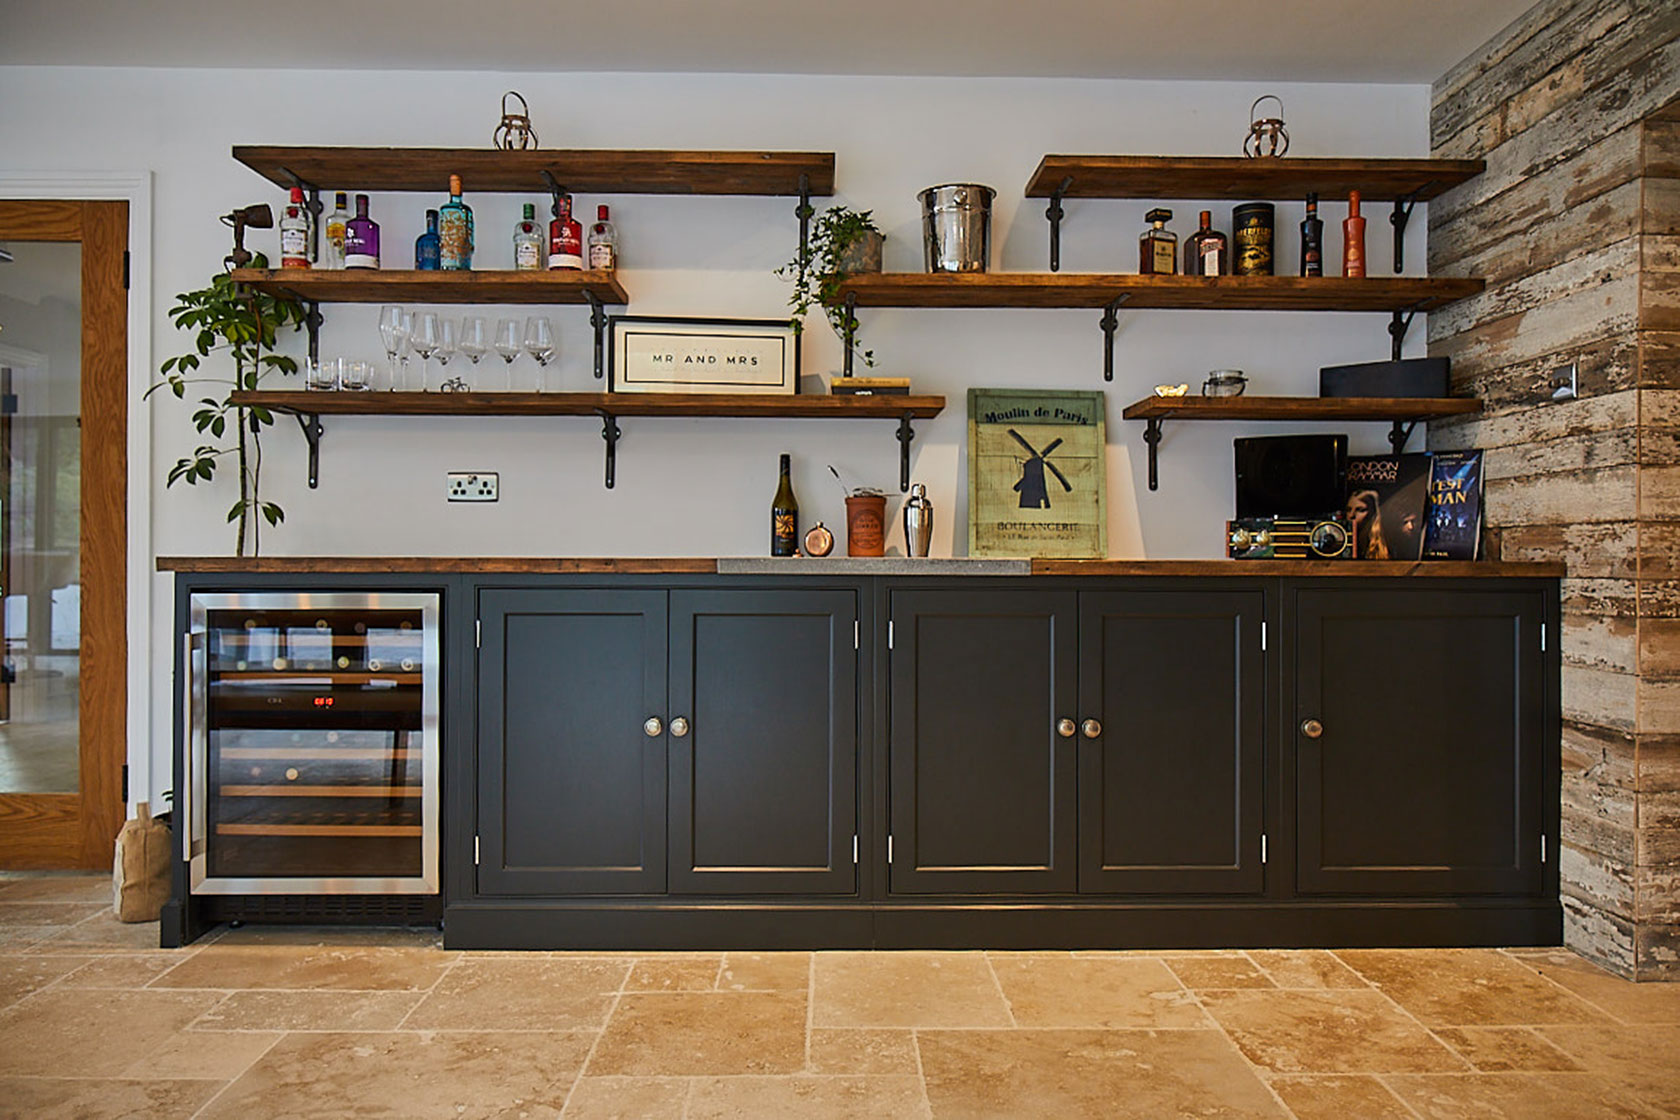 Painted blue units with integrated wine cooler and open rustic shelves